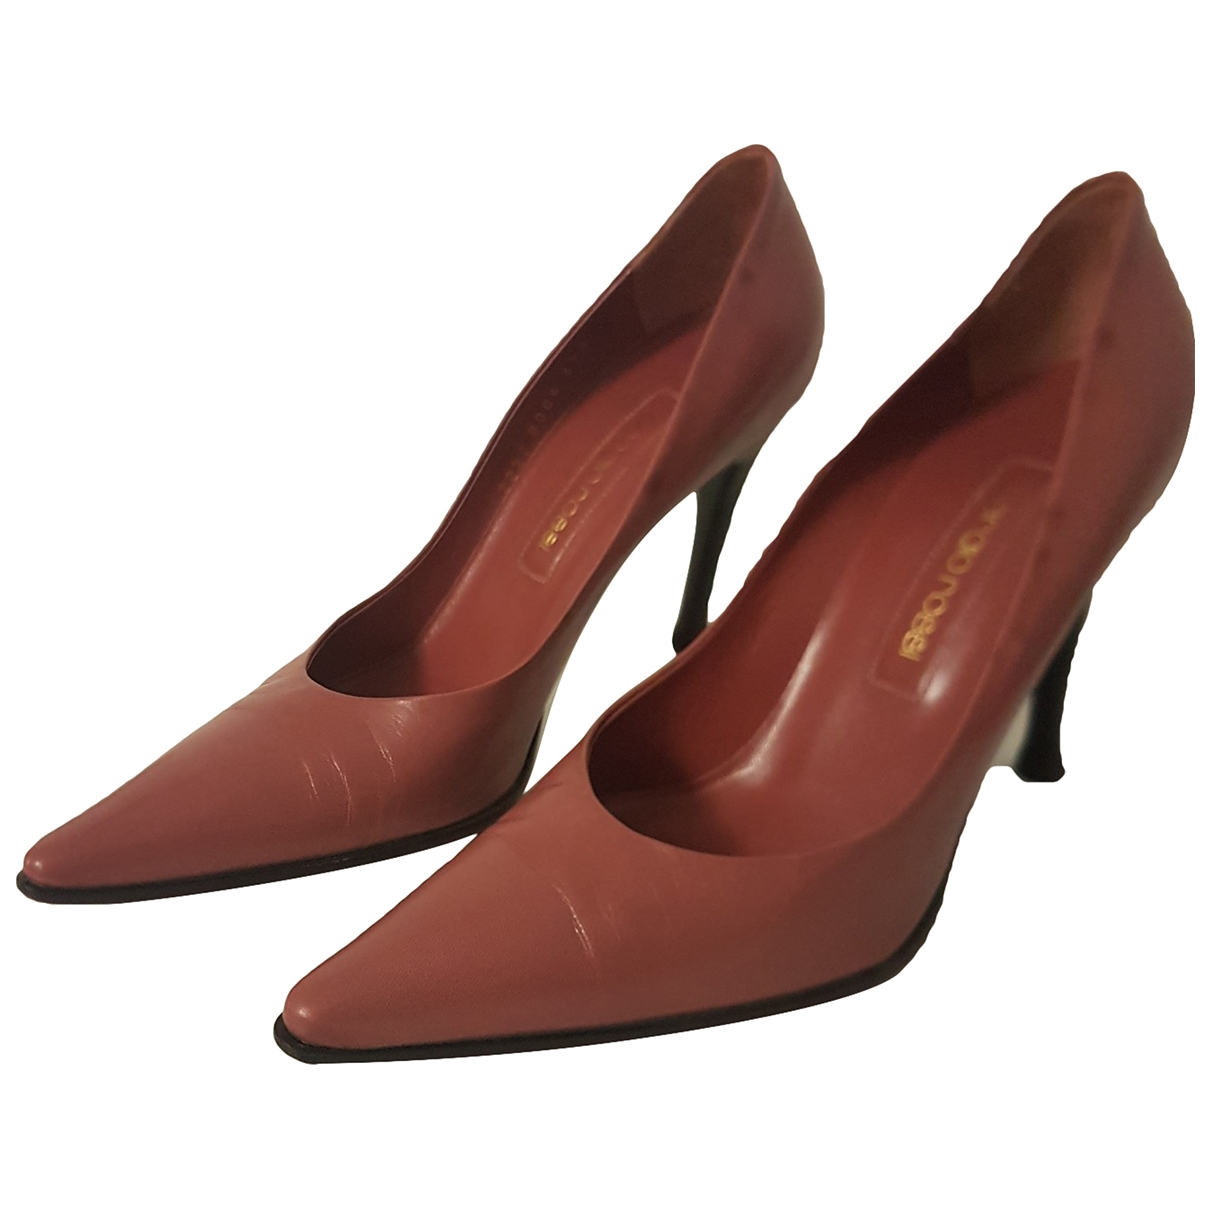 Sergio Rossi \N Pink Leather Heels for Women 37.5 EU